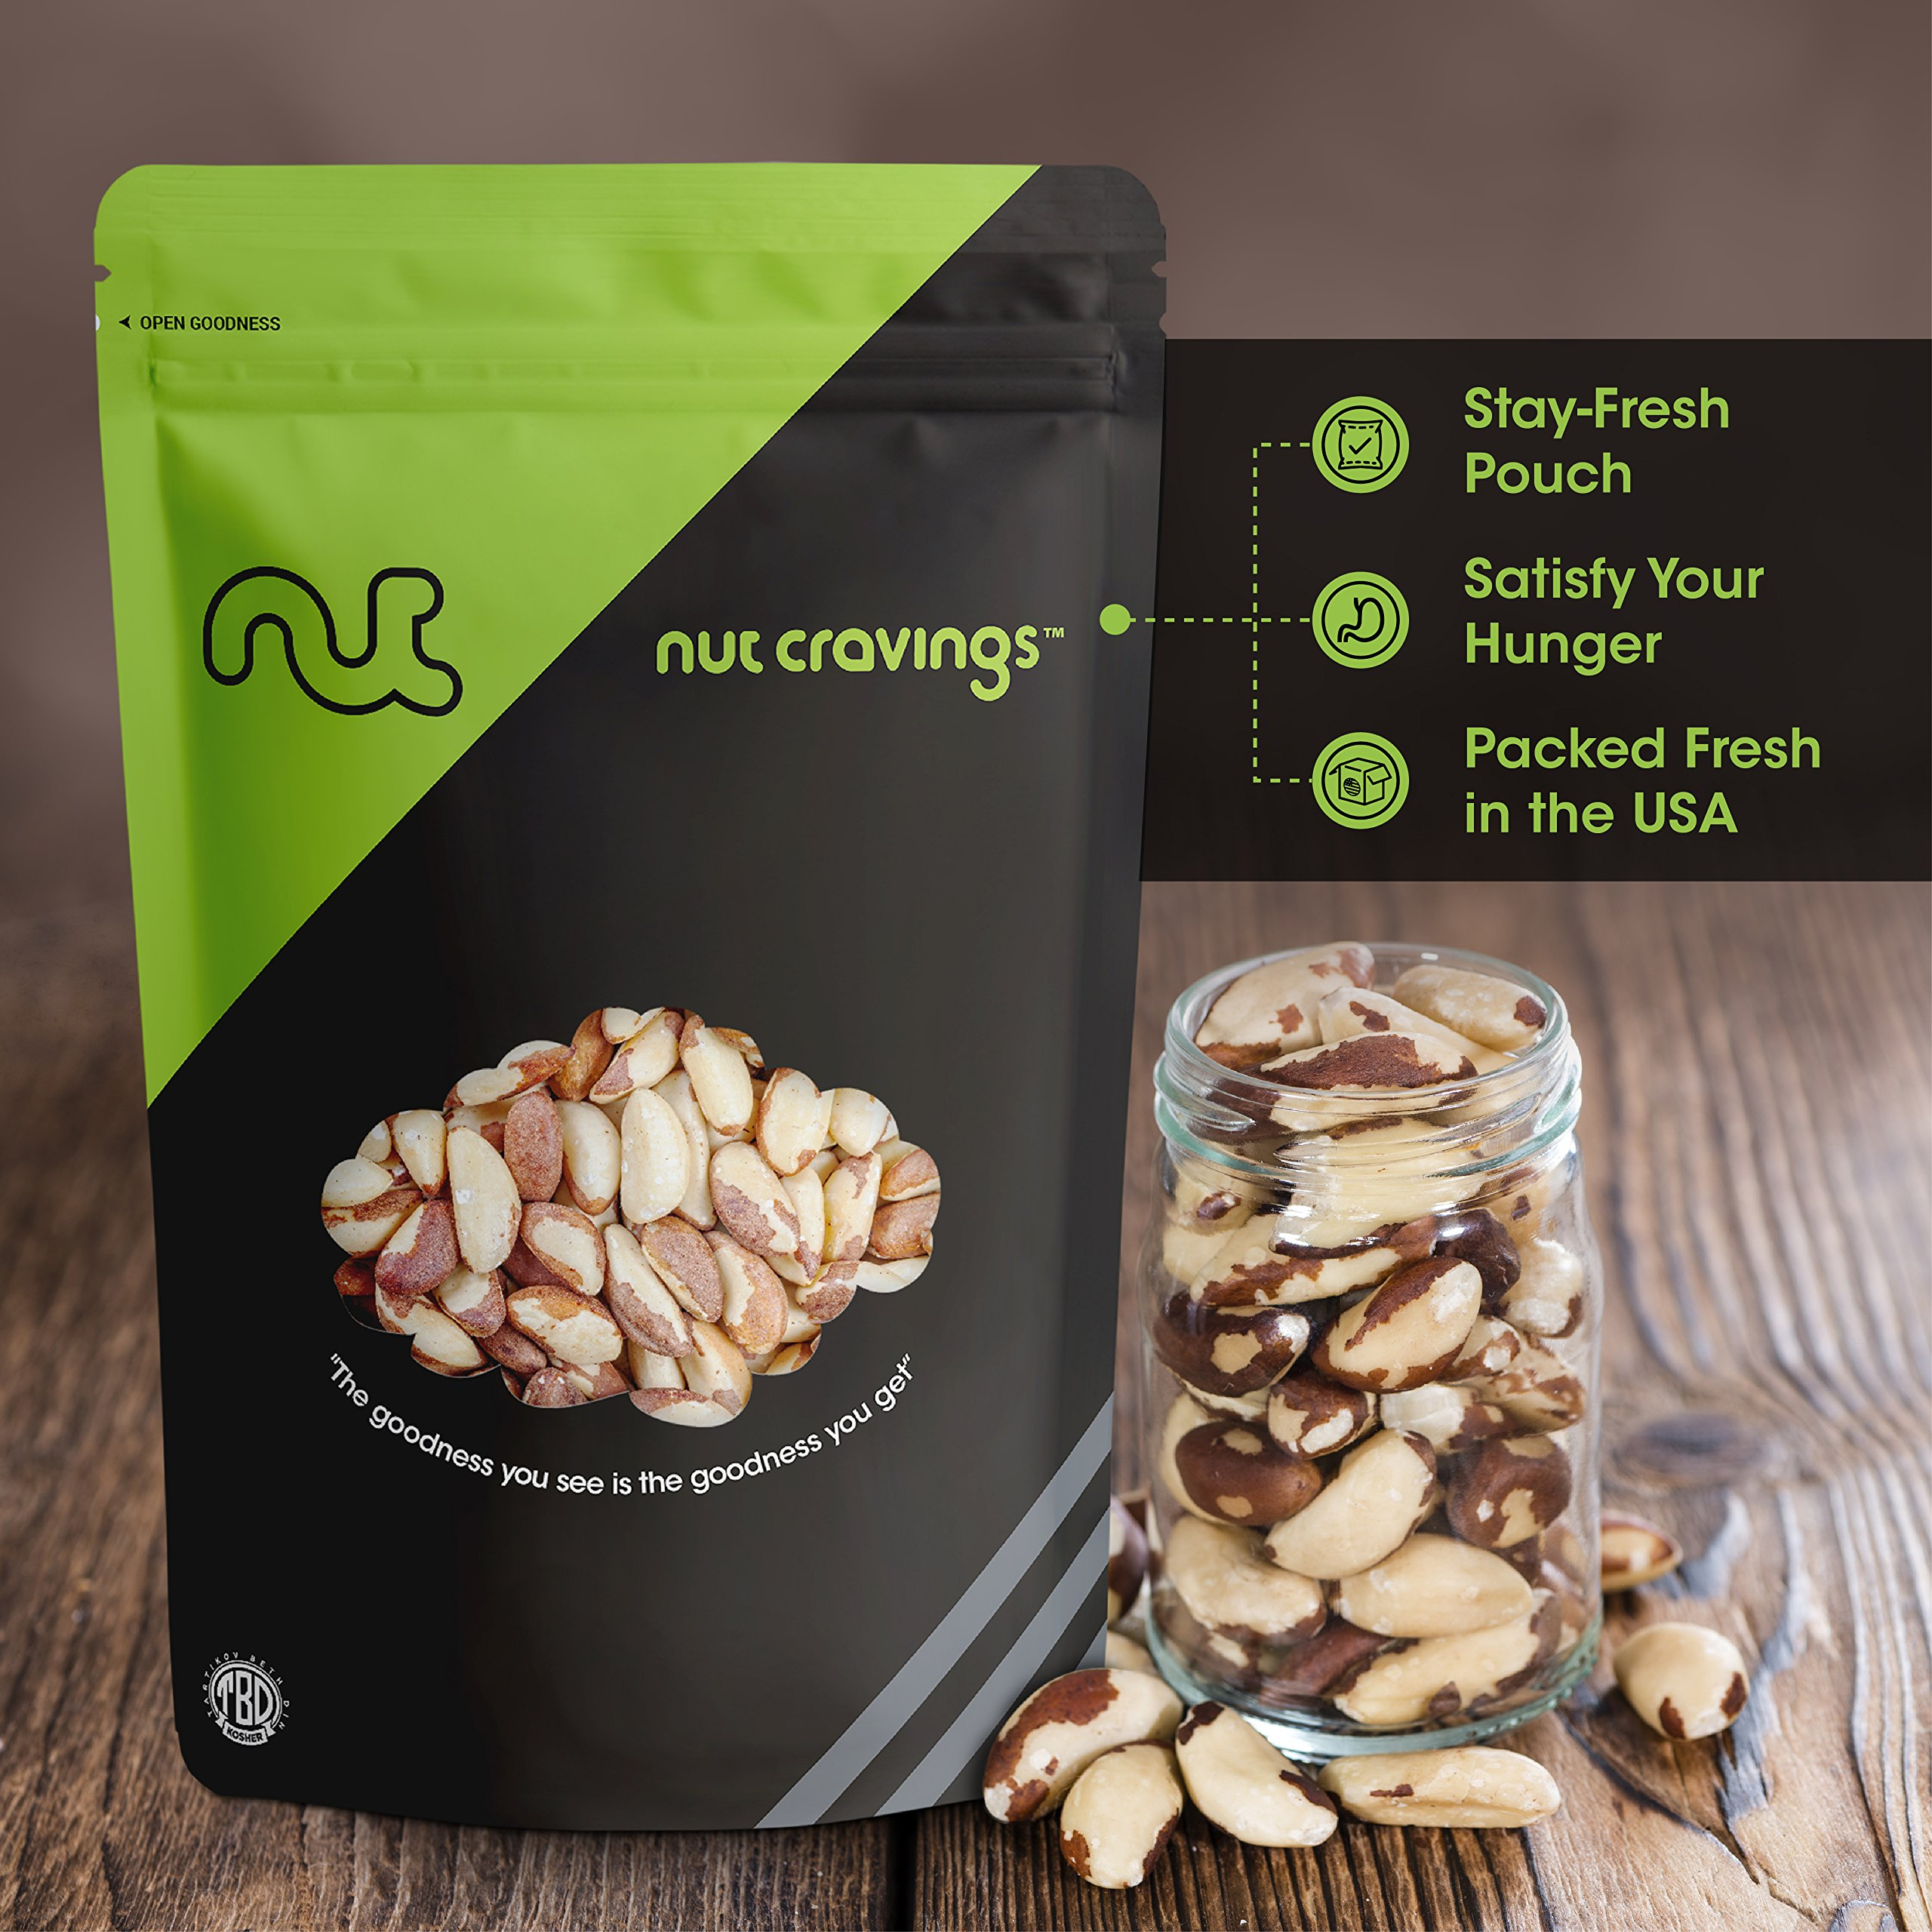 Nut Cravings Raw Brazil Nuts (1 Pound) – Whole, Compare To Organic, Unsalted, No Shell Brazilian Nuts – 16 Ounce by Nut Cravings (Image #6)